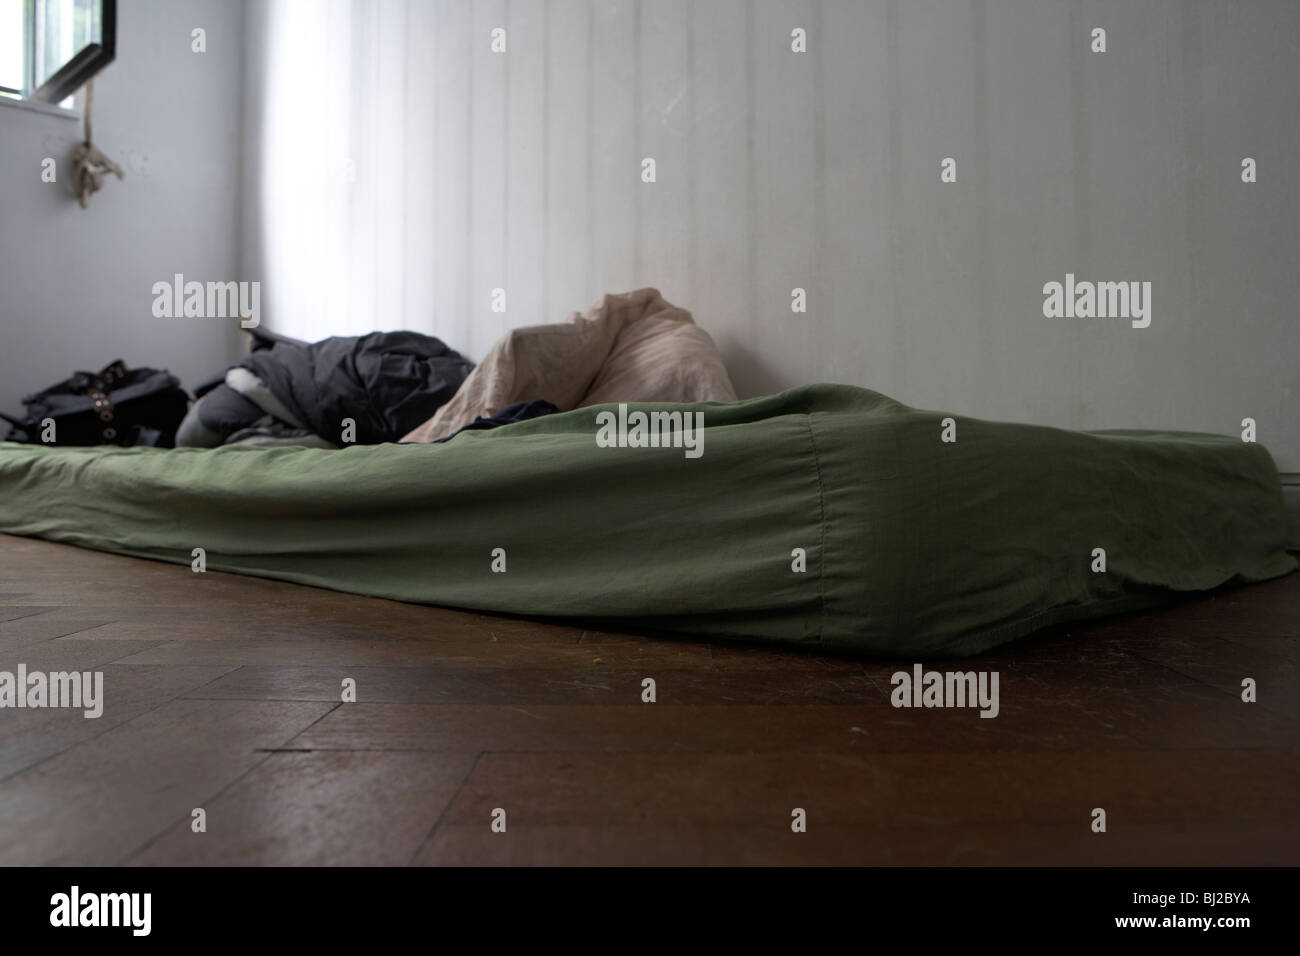 old dirty mattress lying on the floor in a bedroom - Stock Image